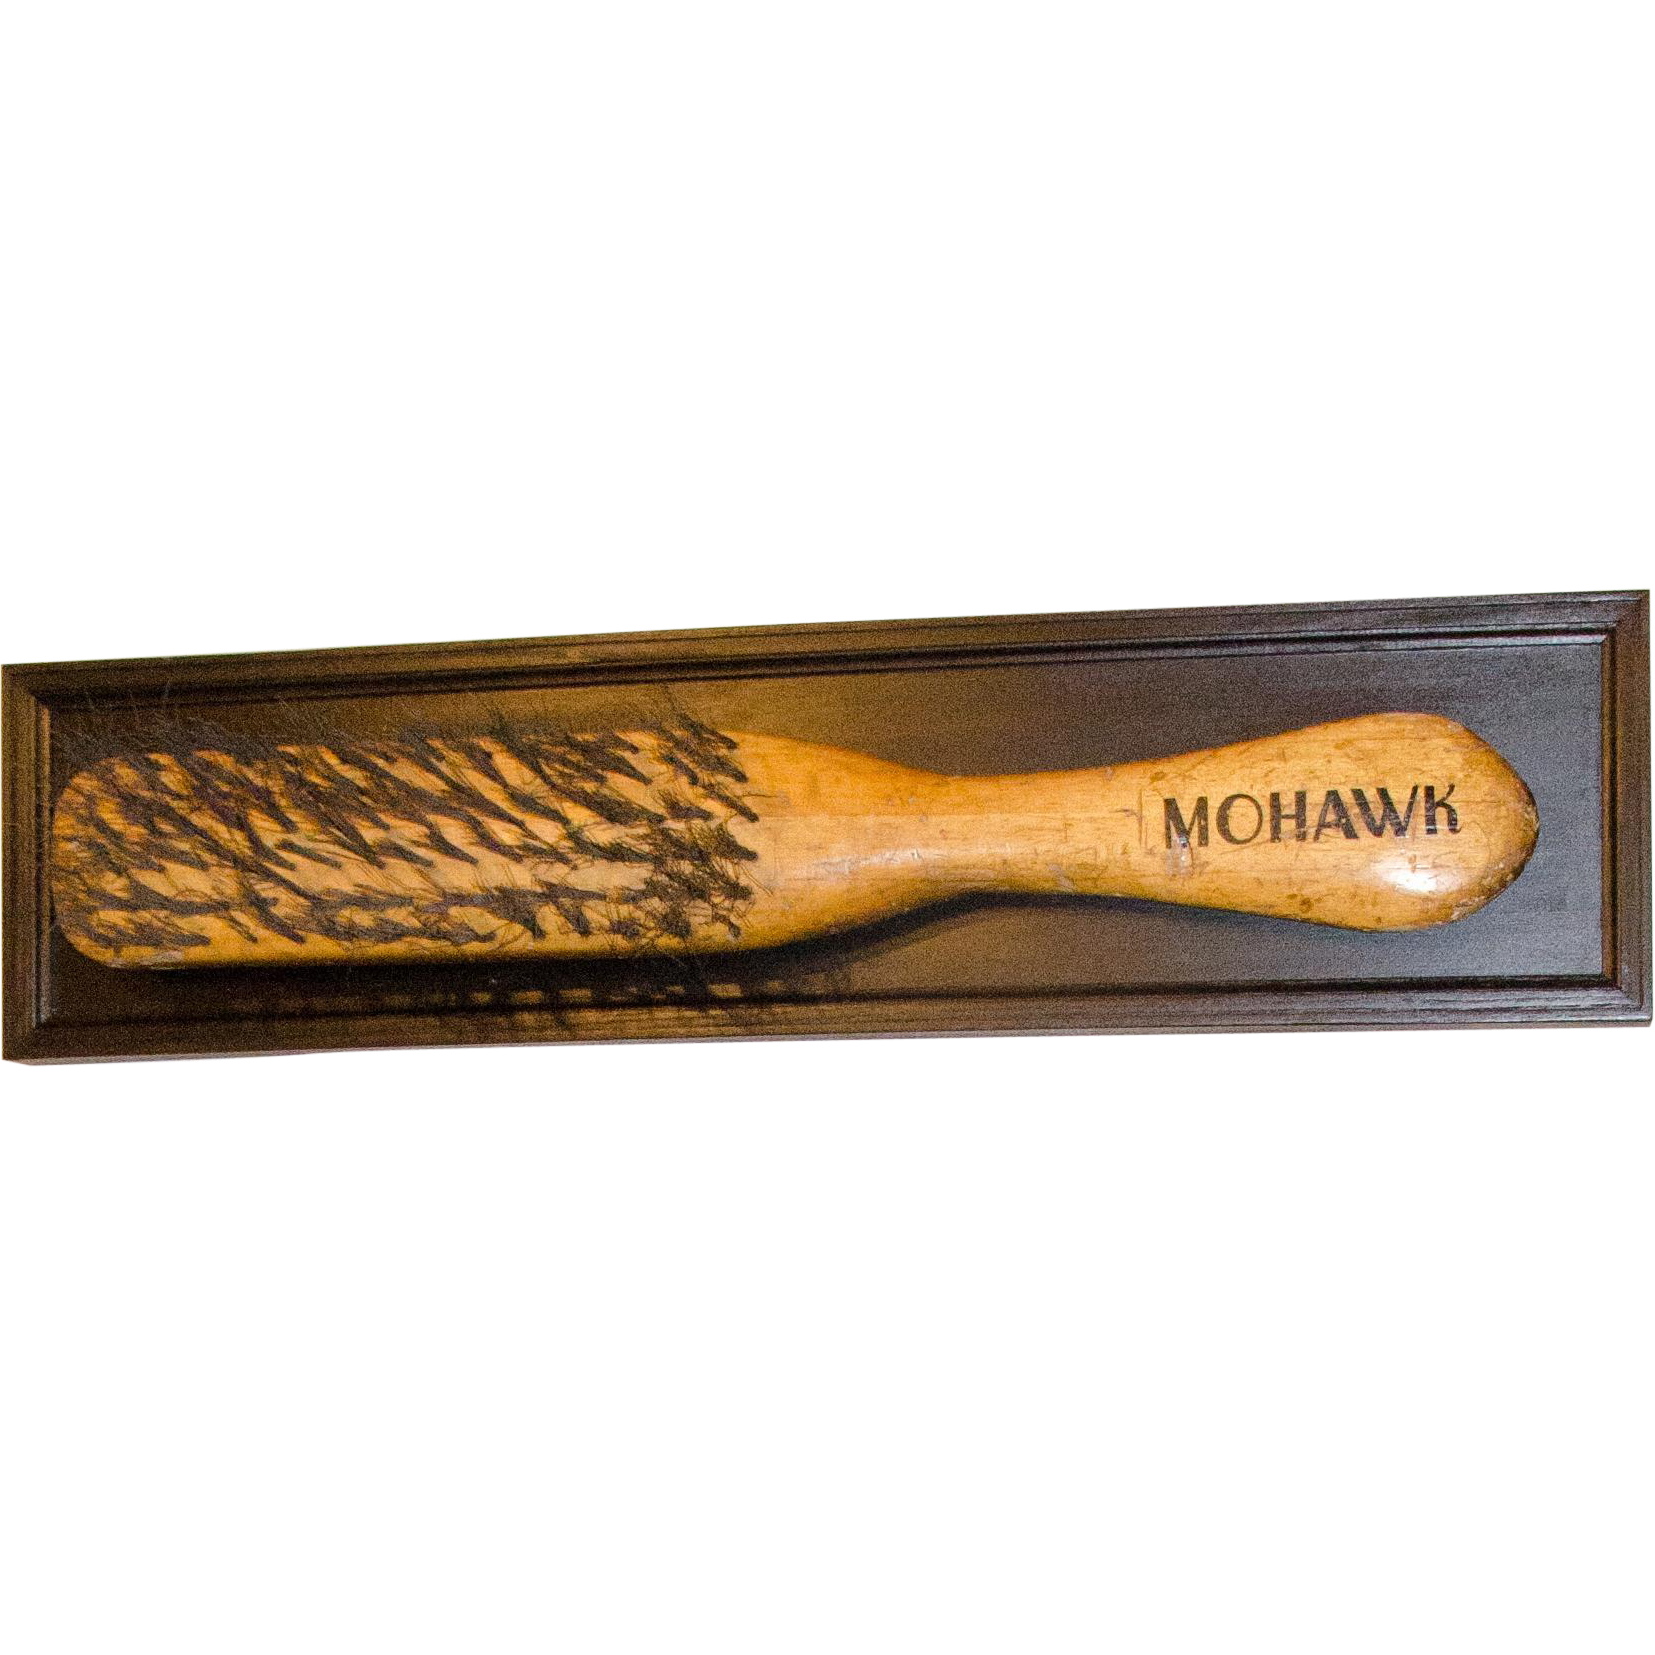 Mohawk Brush Trade Sign